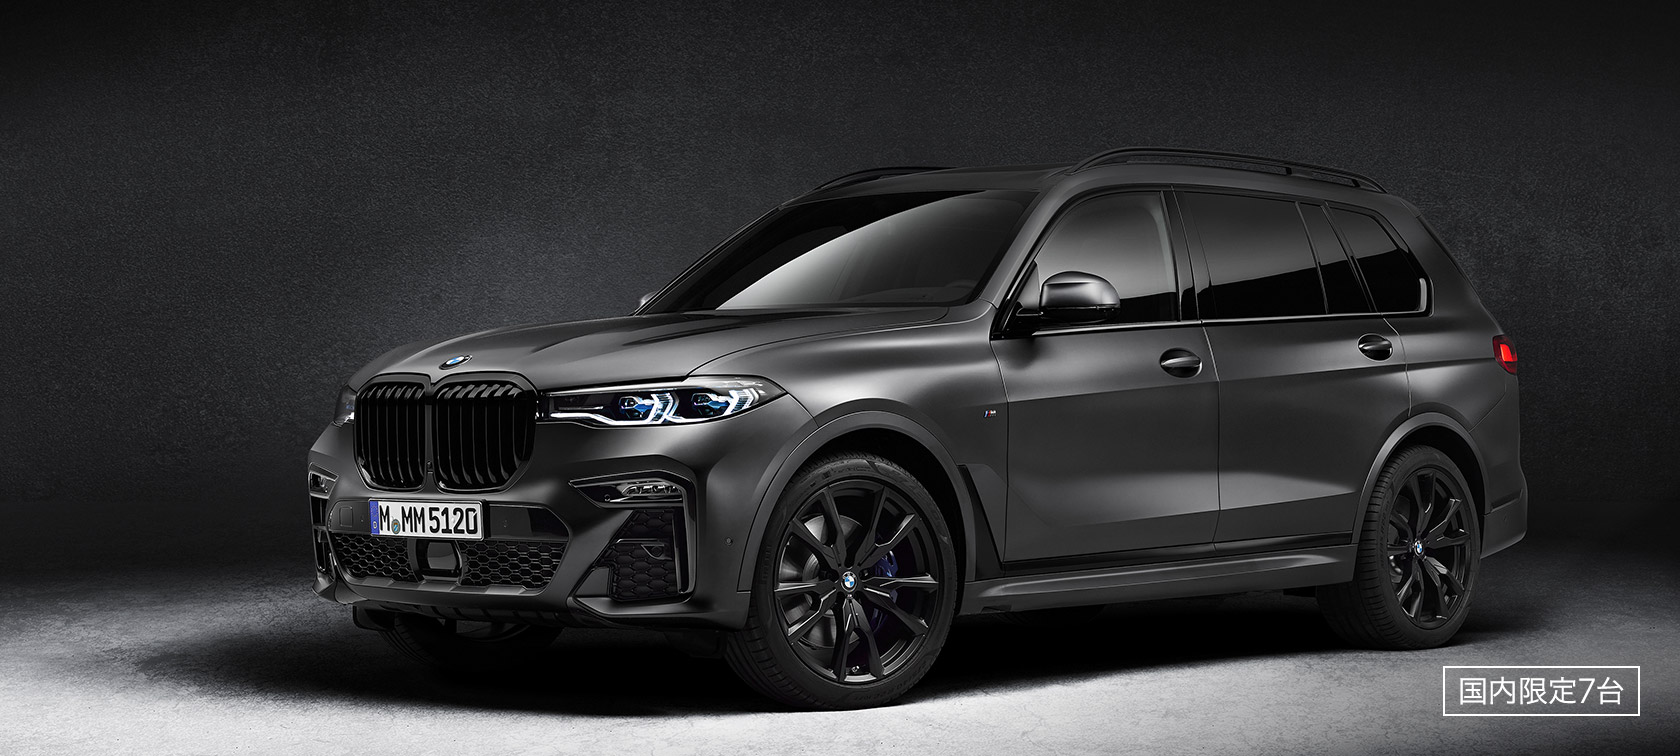 THE X7 Dark Shadow Edition.